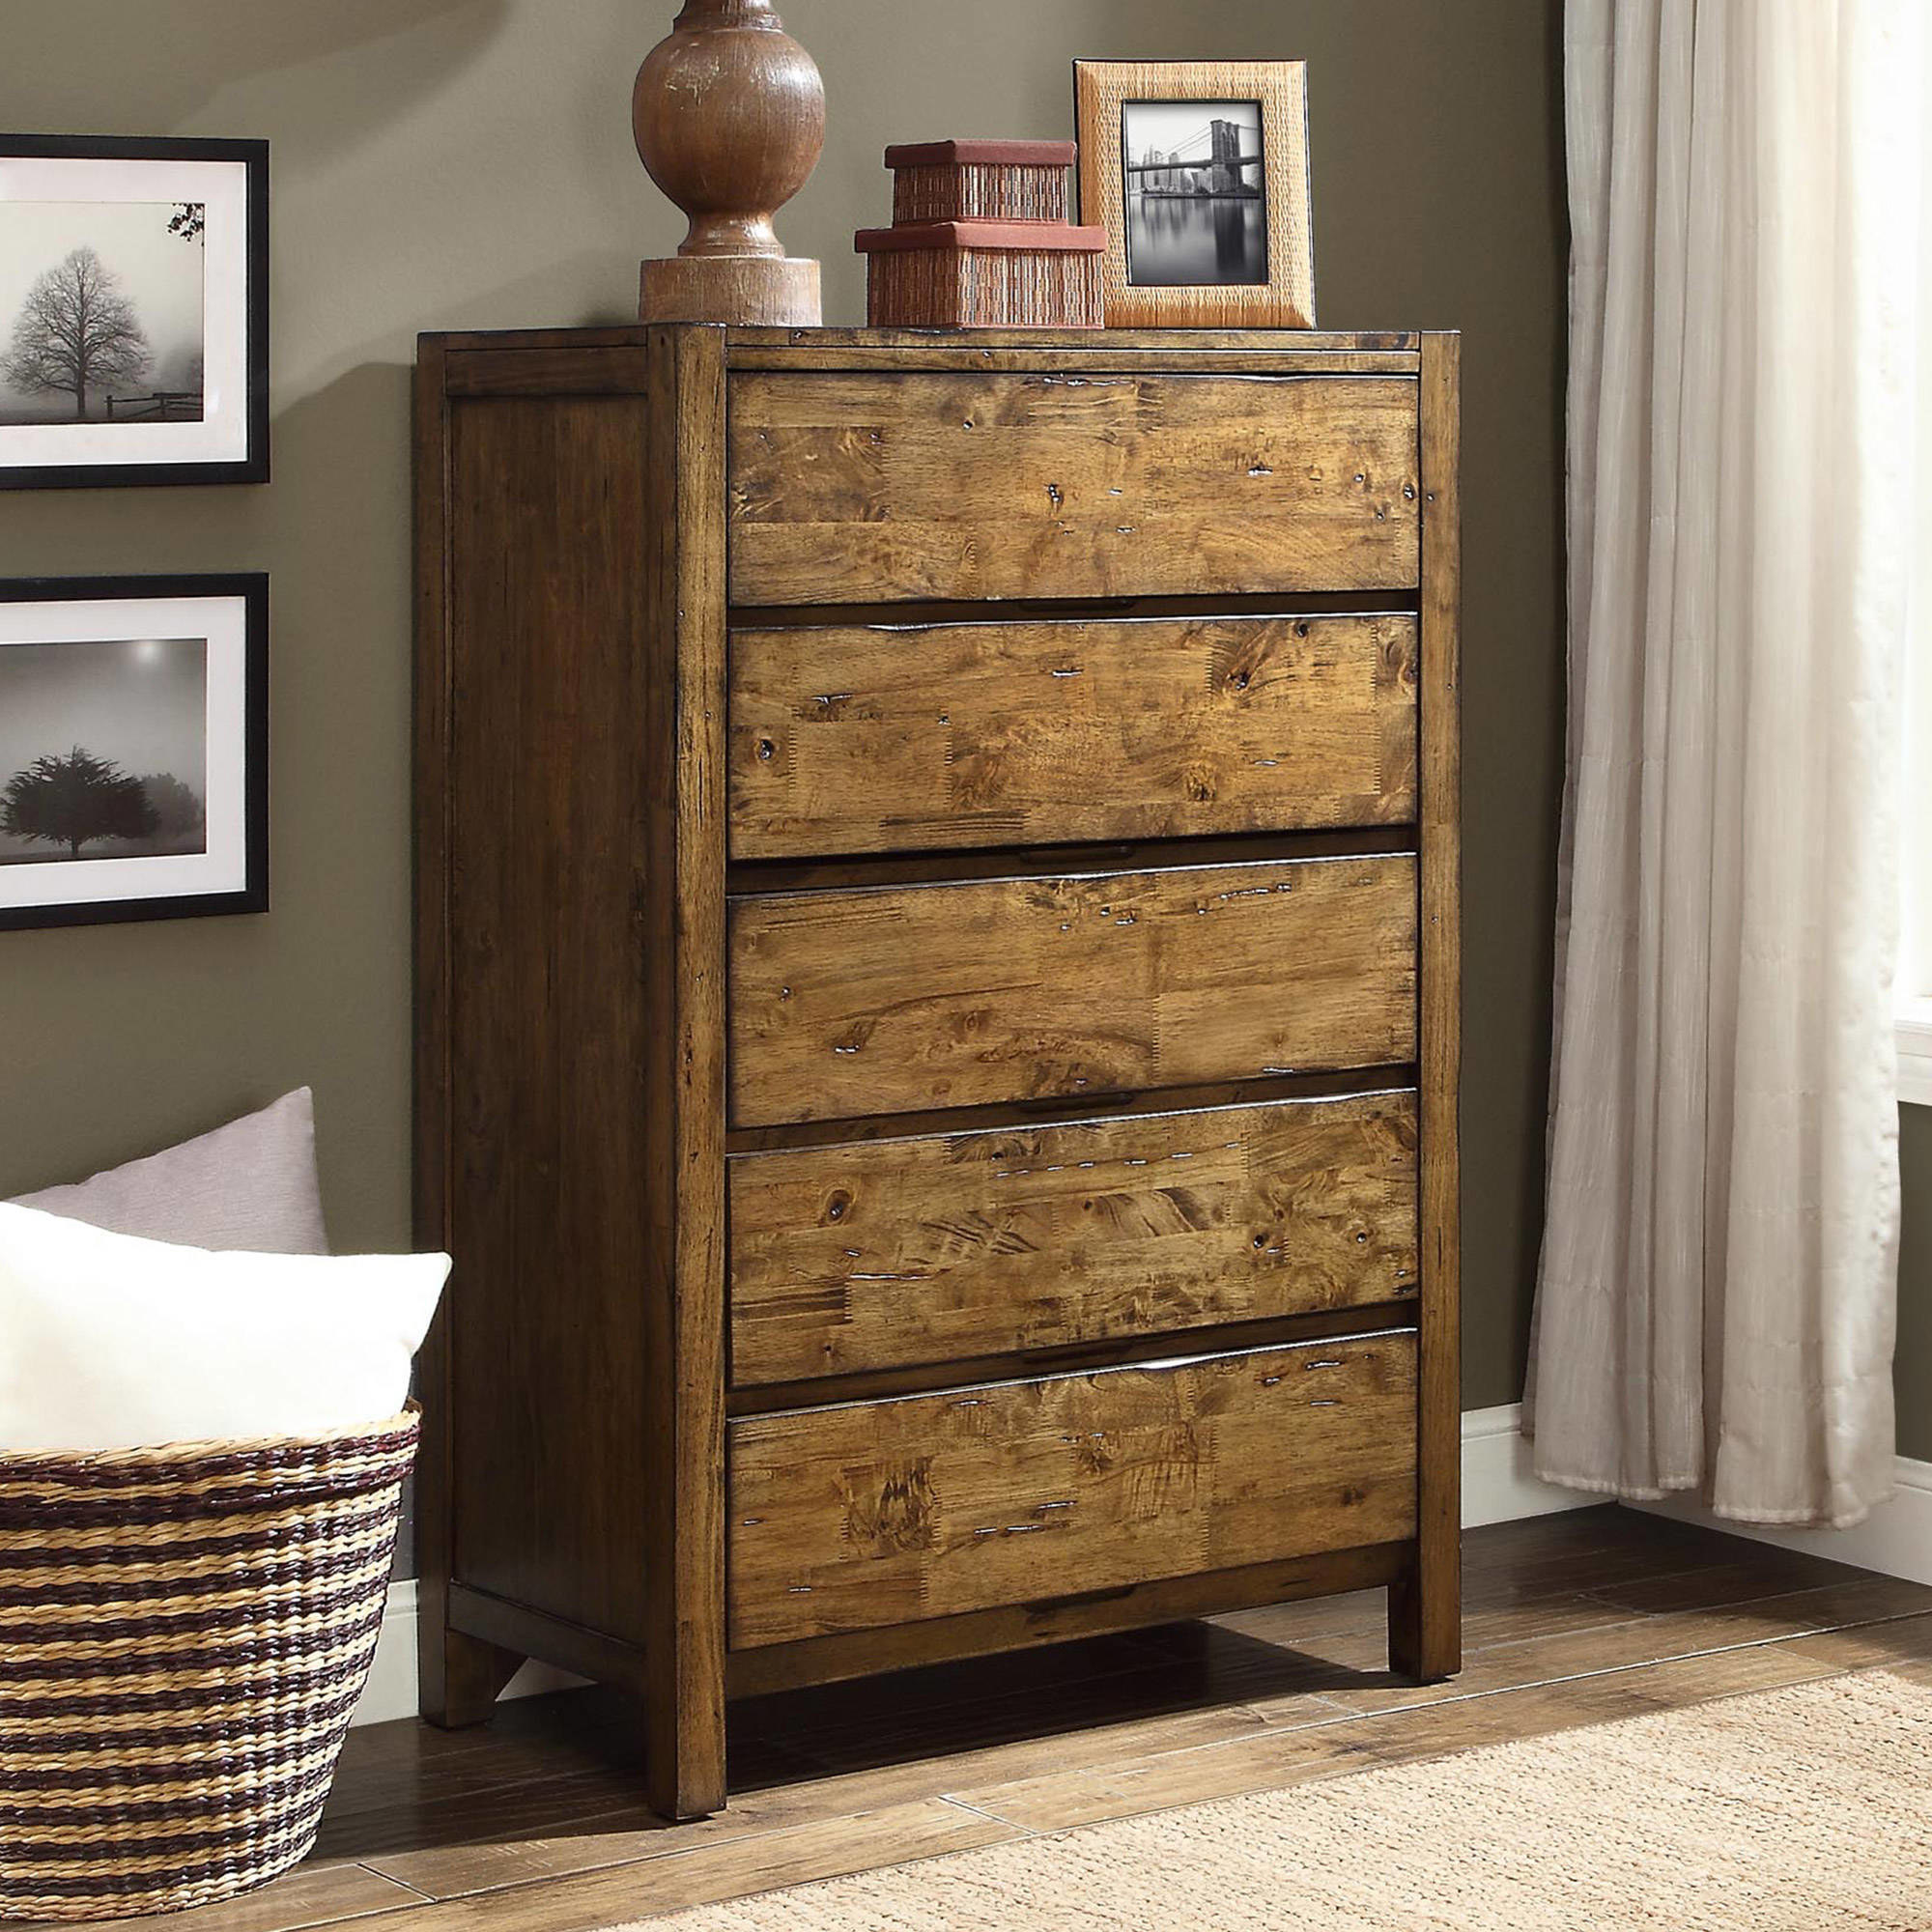 a rustic wooden tall dresser with five drawers, with decor resting on top of it